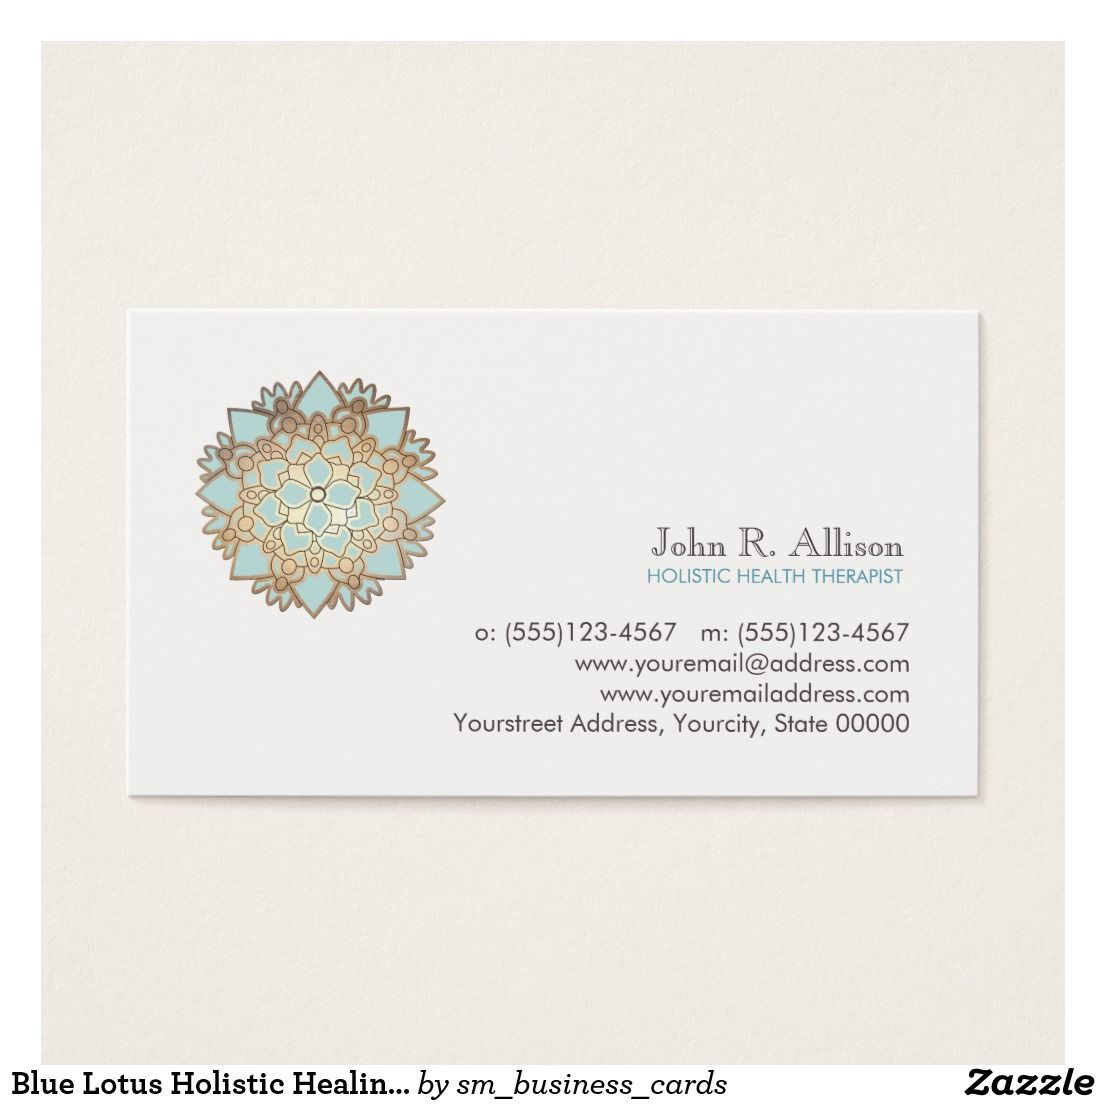 Blue Lotus Holistic Healing Arts and Wellness Business Card ...